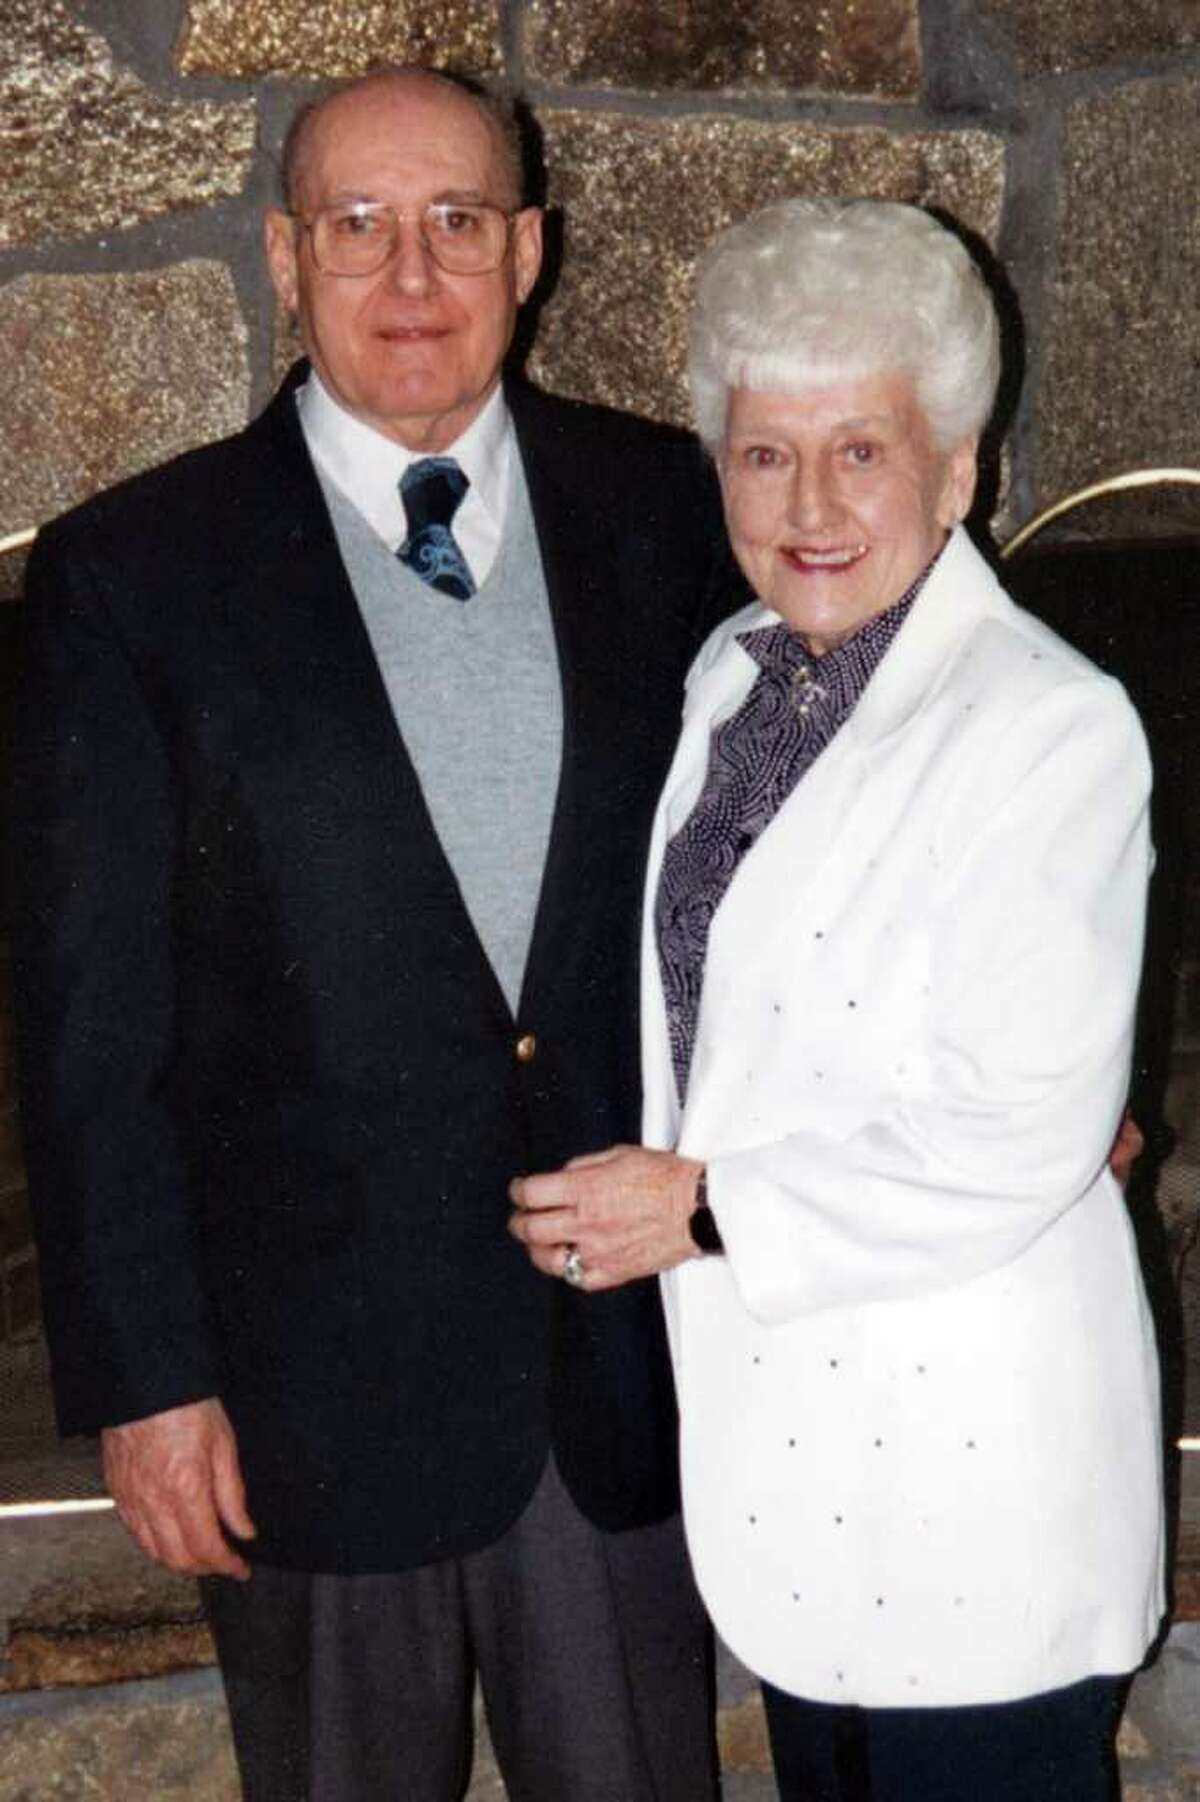 George and Ruth Jarvis in a 1994 family photo. The Jarvises both passed away this week, just a day apart. Ruth died Sunday, and George died on Monday.